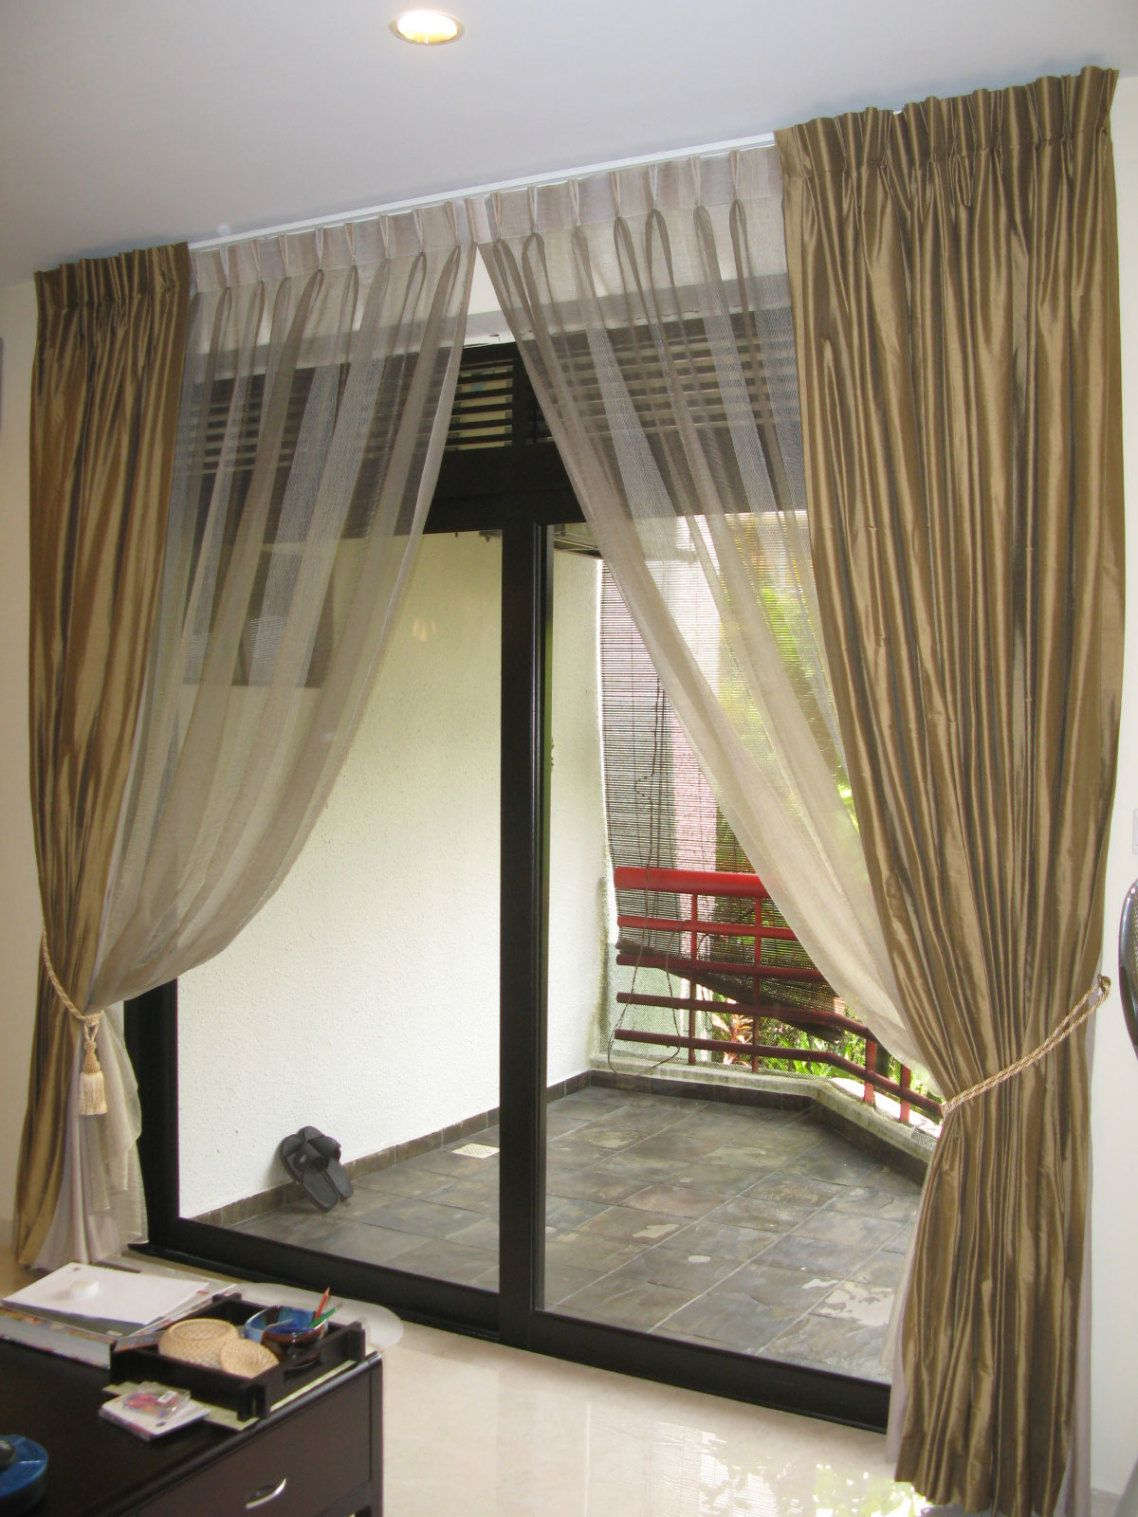 Bay Window Treatments Ideas Traditional Small Modern Window Treatment Ideas  With Gold Cutton Curtain Ideas And Transparent Sheer Side Cross Theme  Window